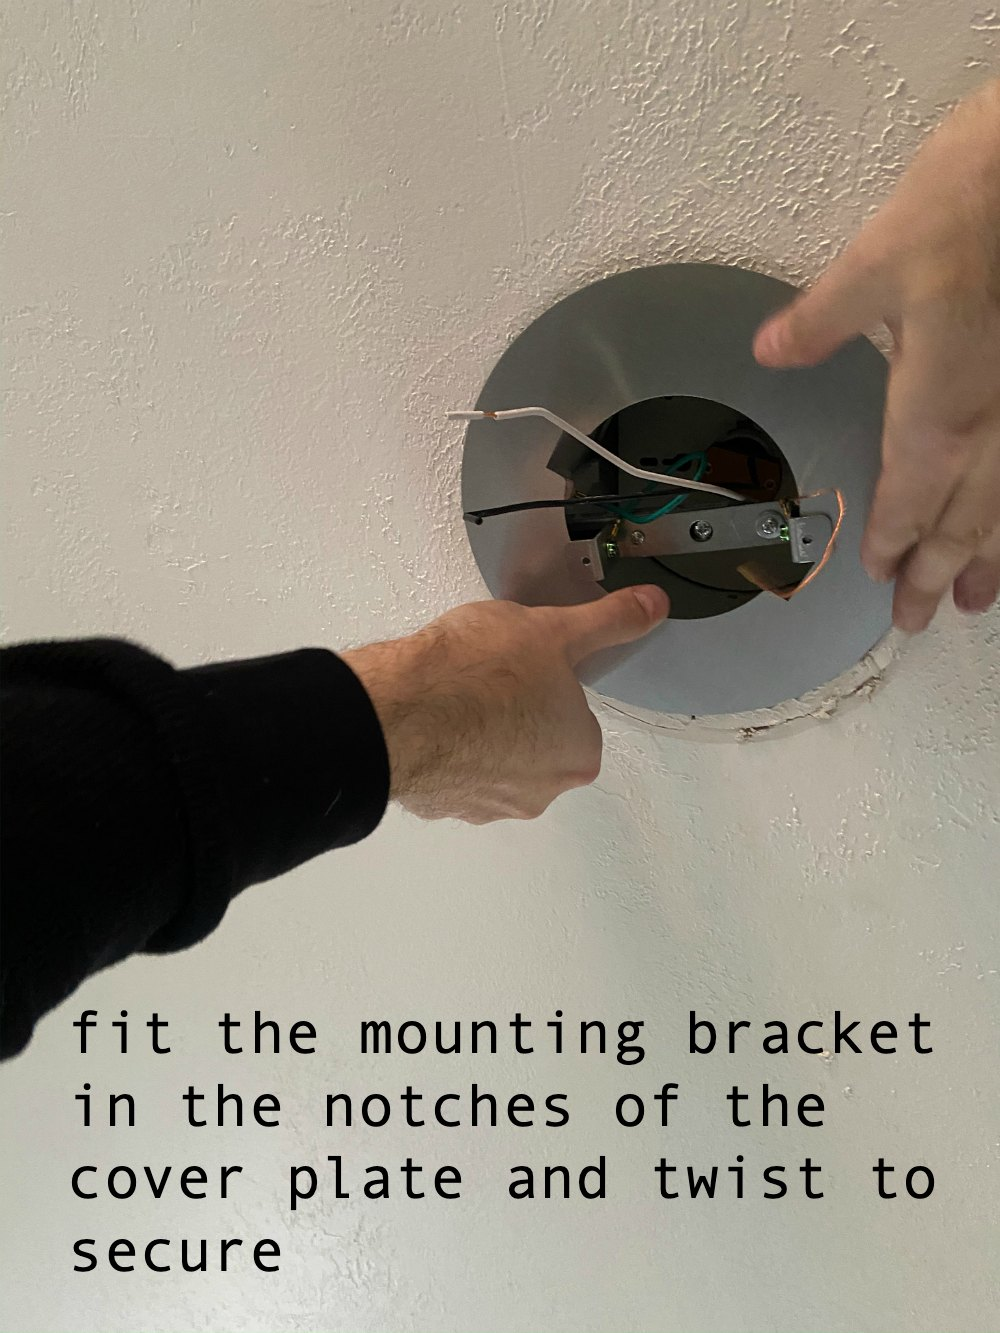 Fit the cover plate over the mounting bracket and twist to secure.